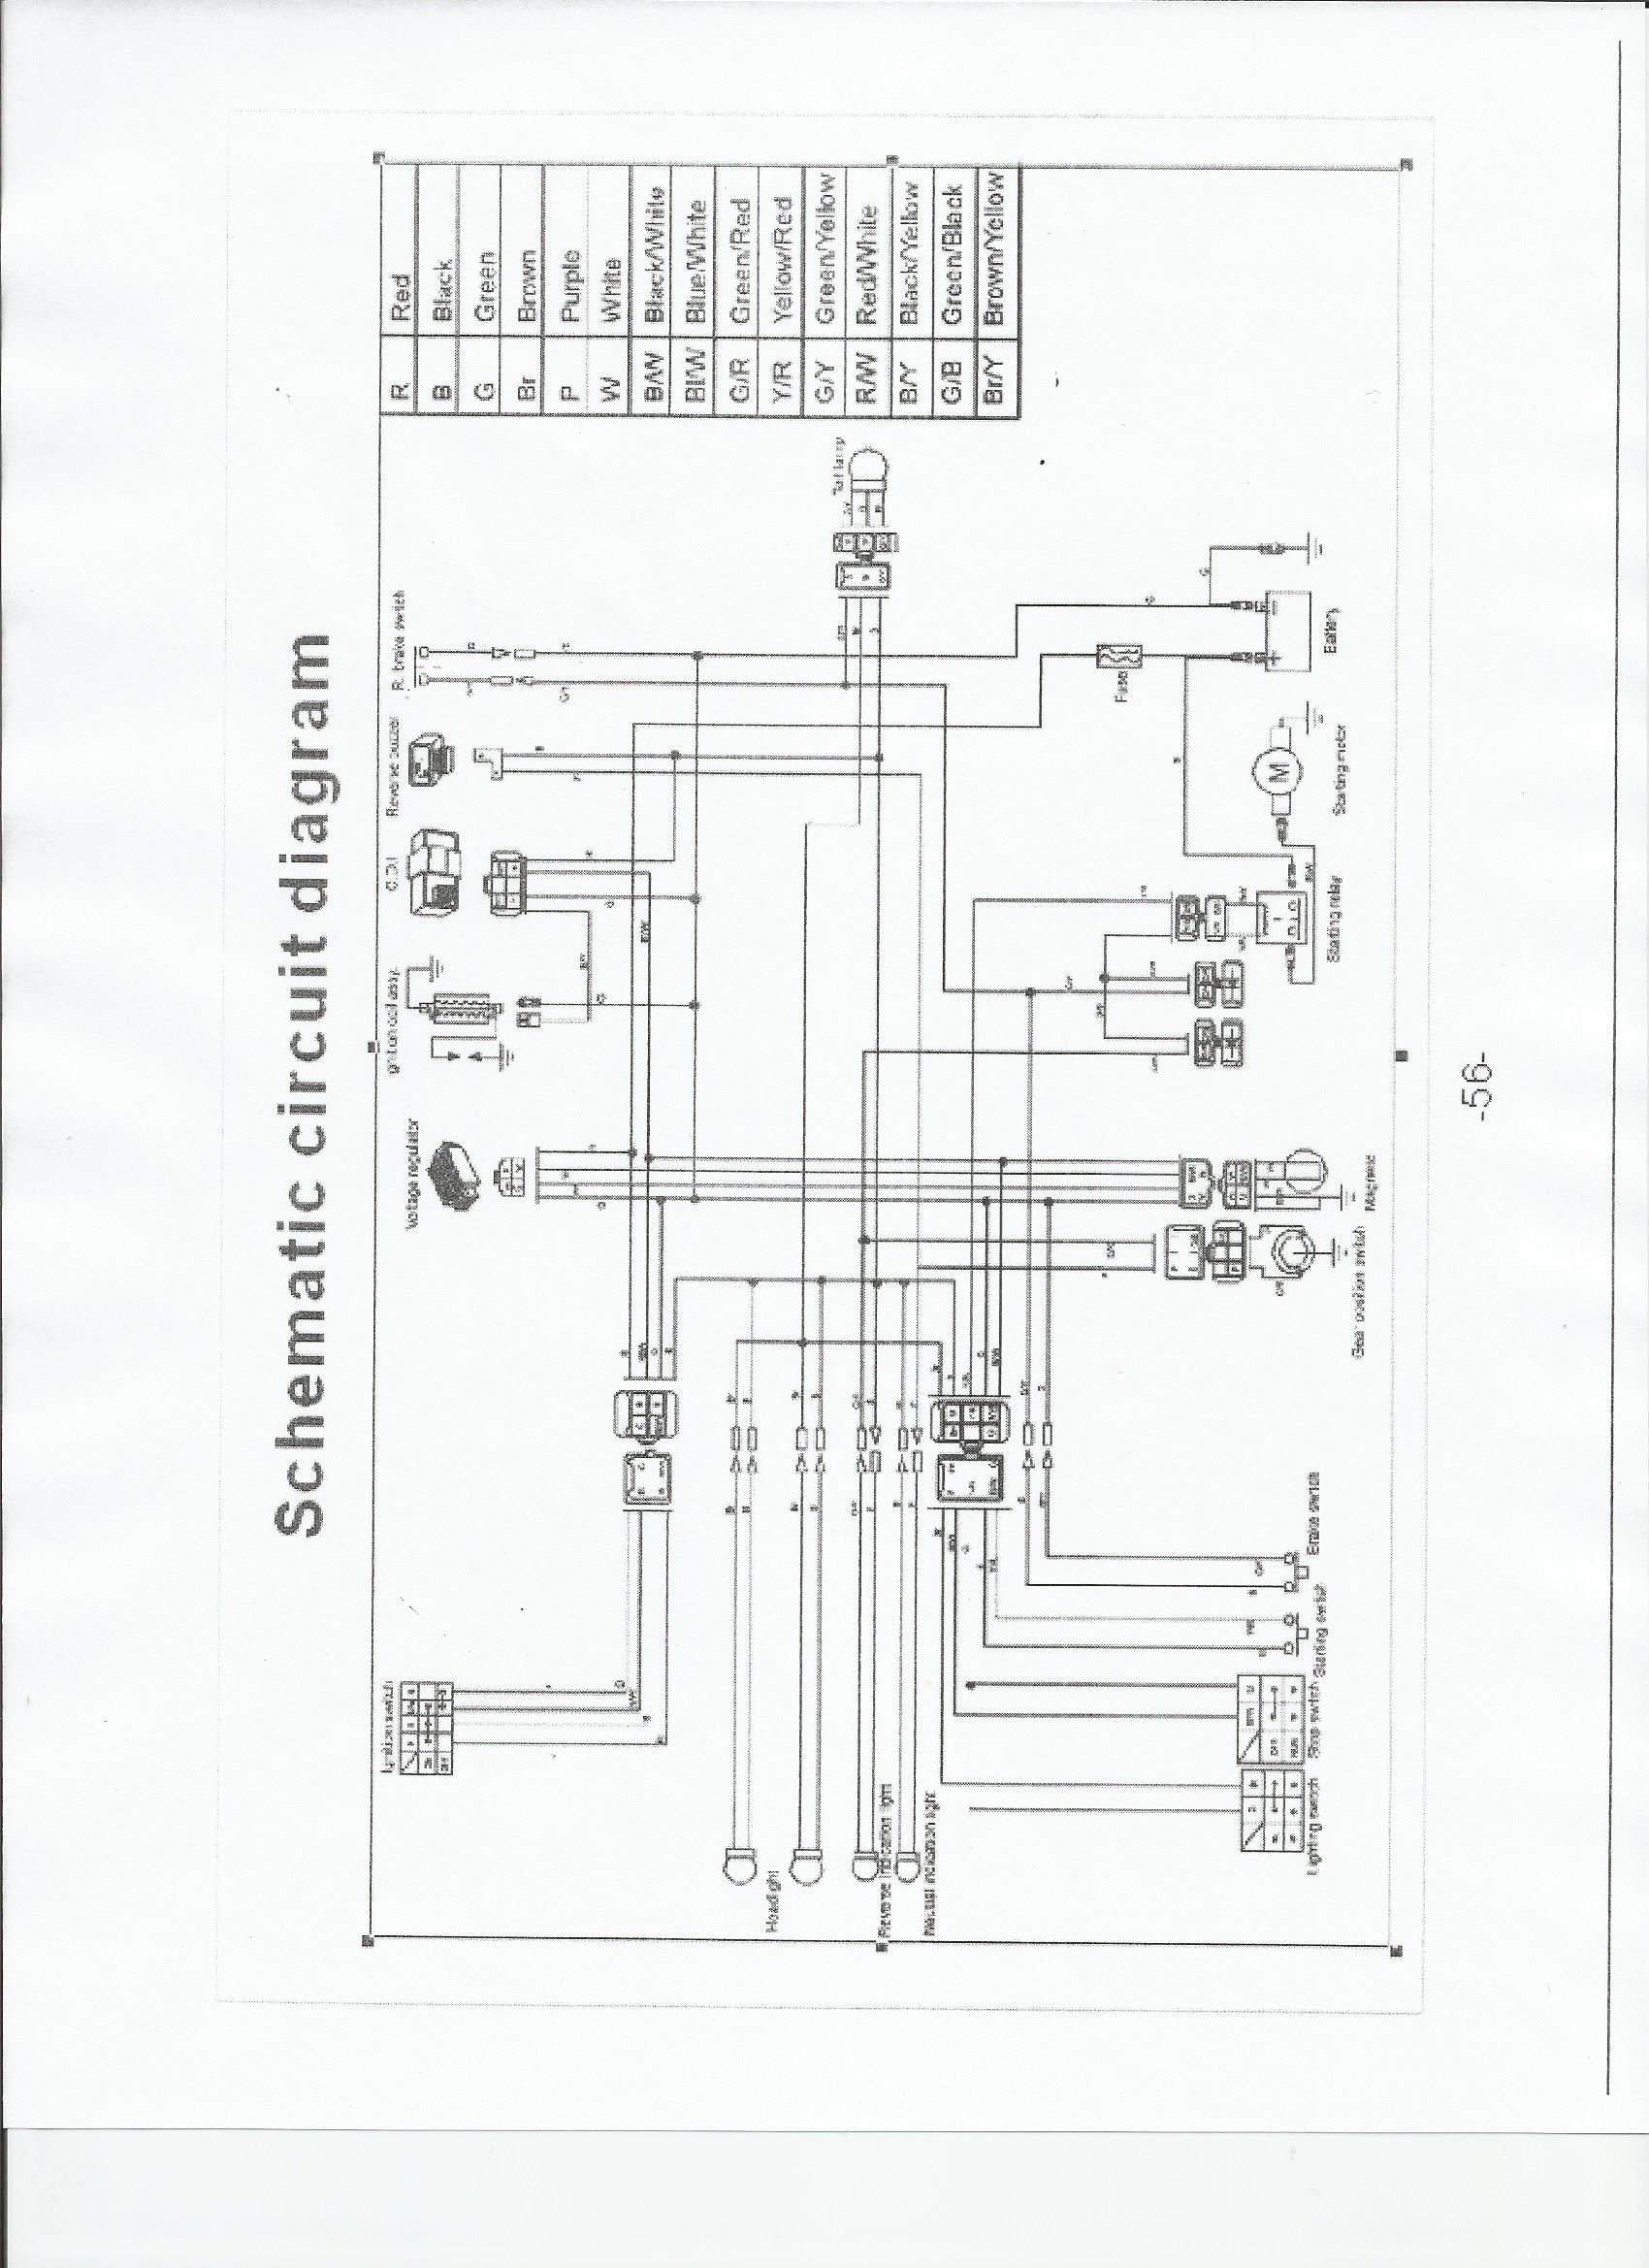 tao tao wiring schematic taotao mini and youth atv wiring schematic familygokarts support tao tao 50 scooter wiring diagram at nearapp.co